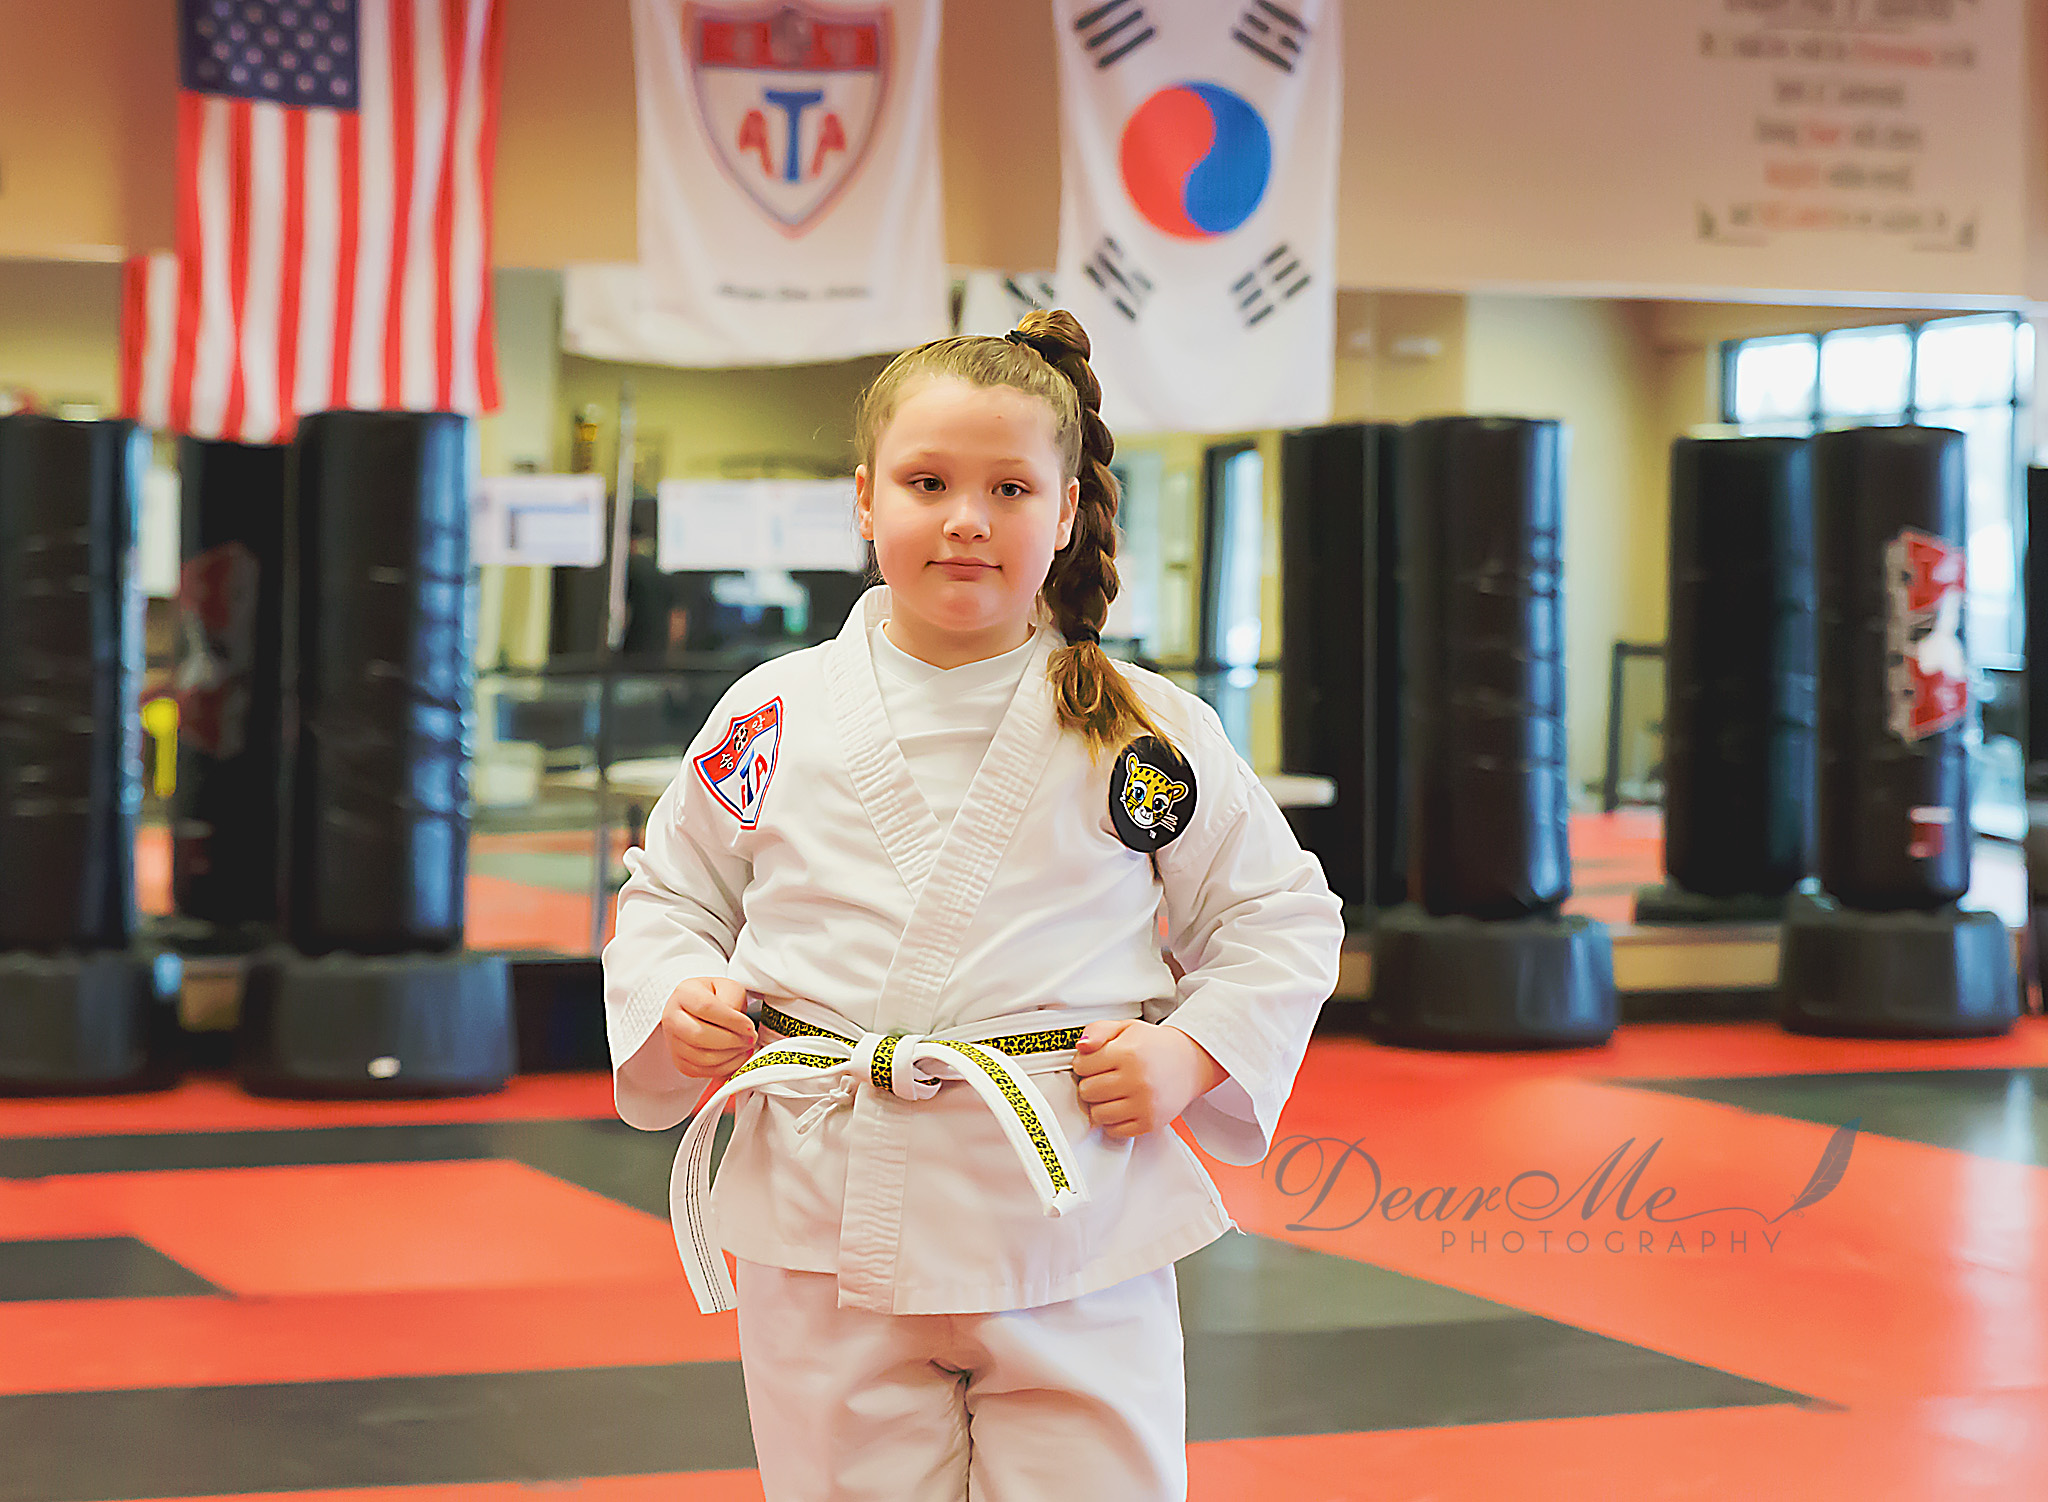 dear me photography bismarck photographer young girl with fists at hips in karate stance